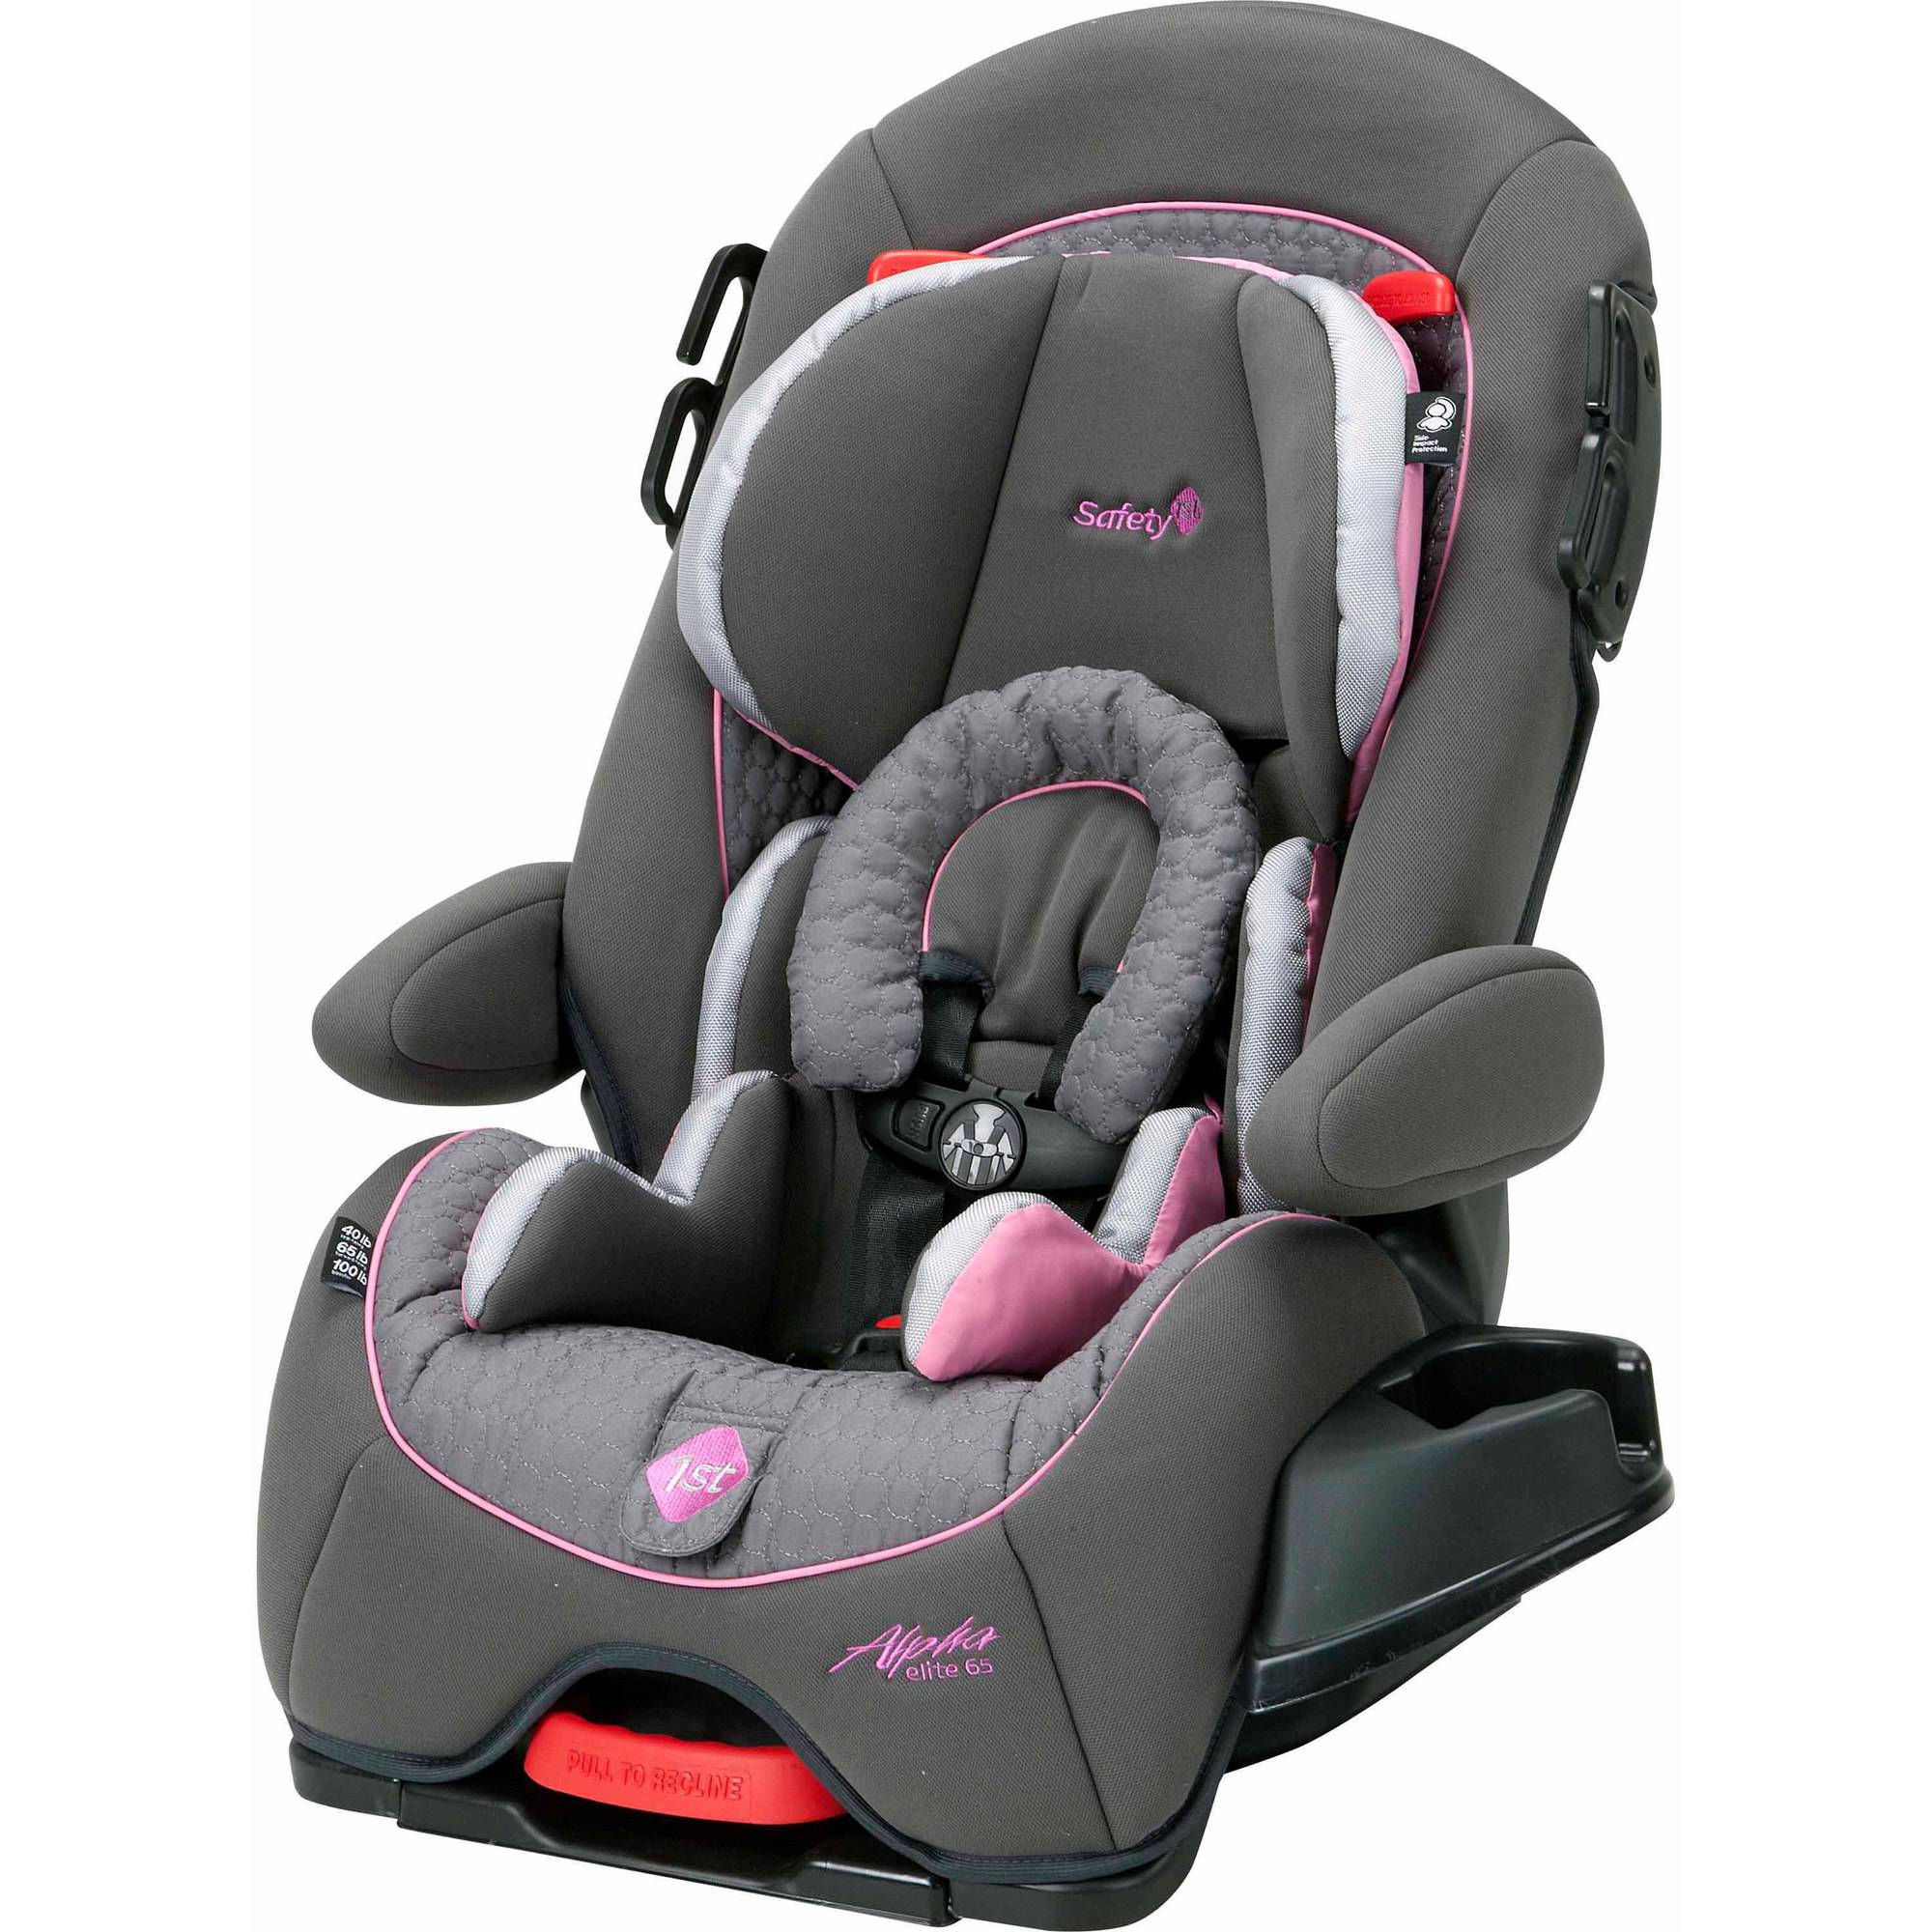 Safety 1st alpha elite 65 3 in 1 convertible car seat choose style